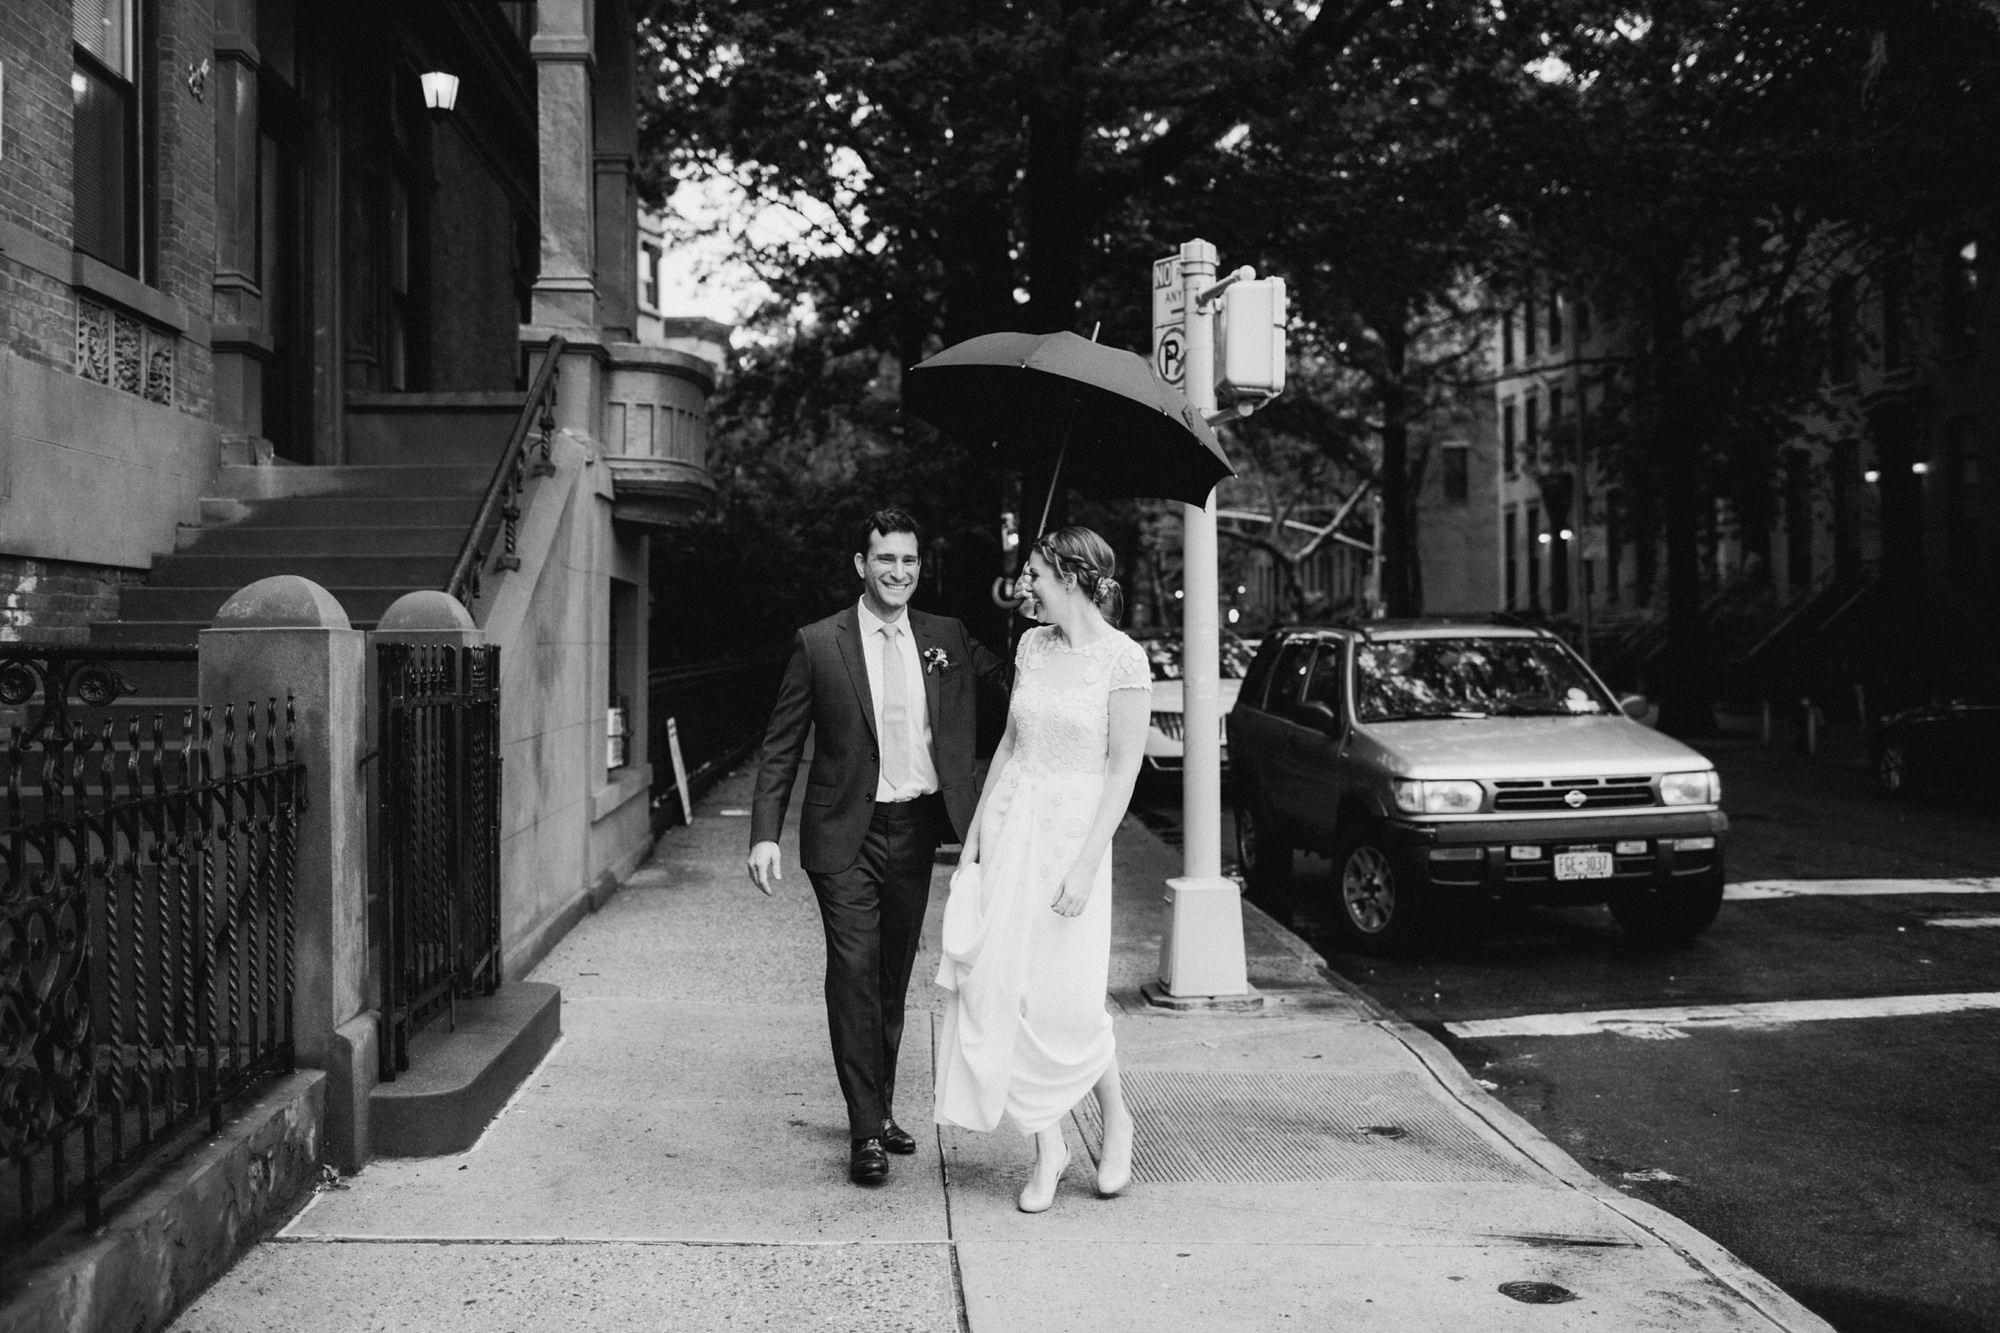 brooklyn_wedding_flatbushfarm_sammblake_021.jpg